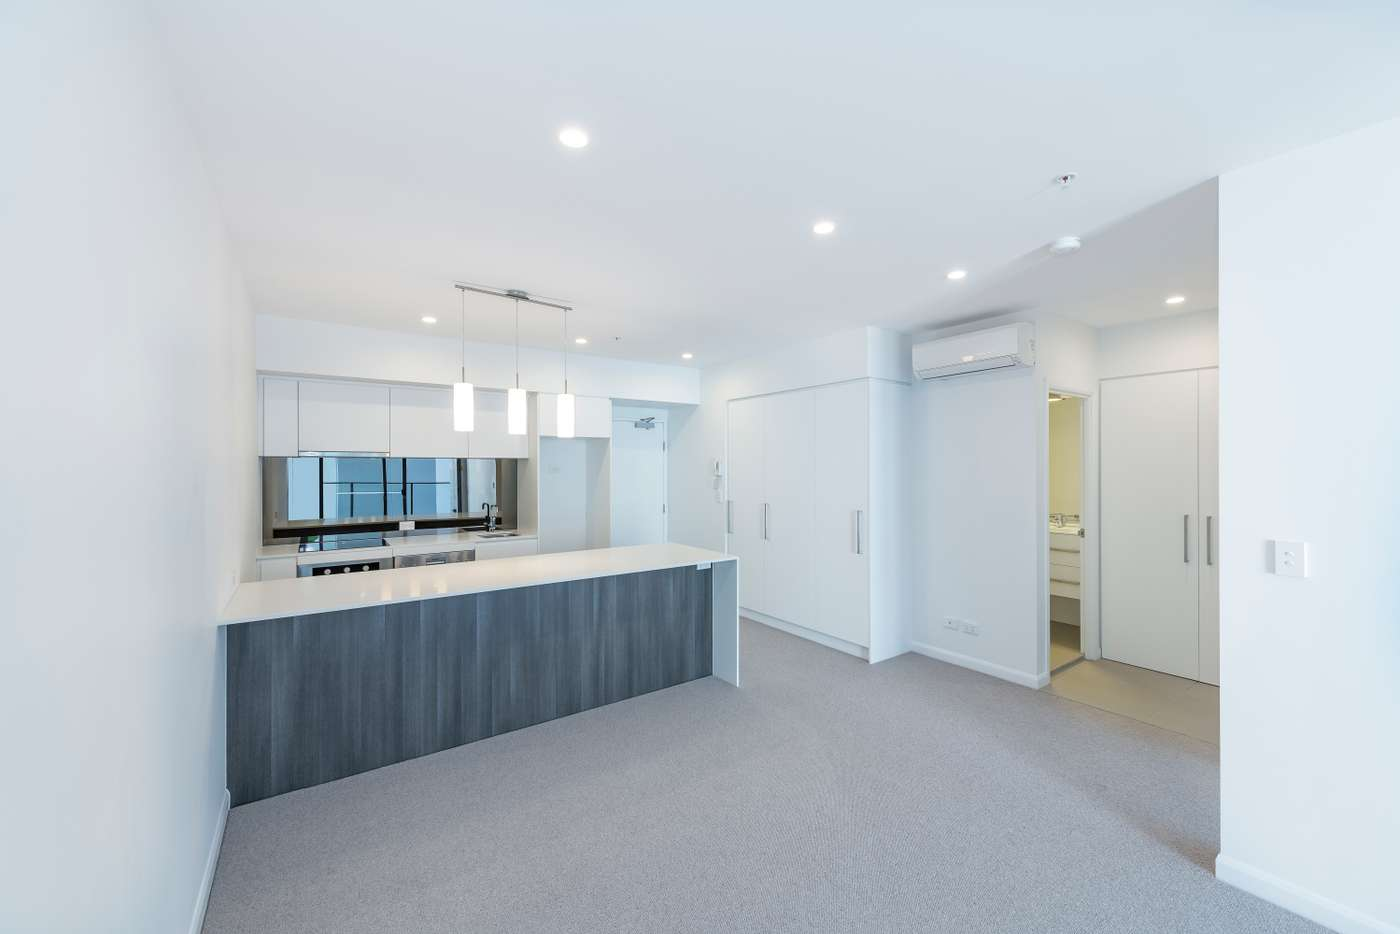 Main view of Homely apartment listing, 21111/300 Old Cleveland Road, Coorparoo QLD 4151